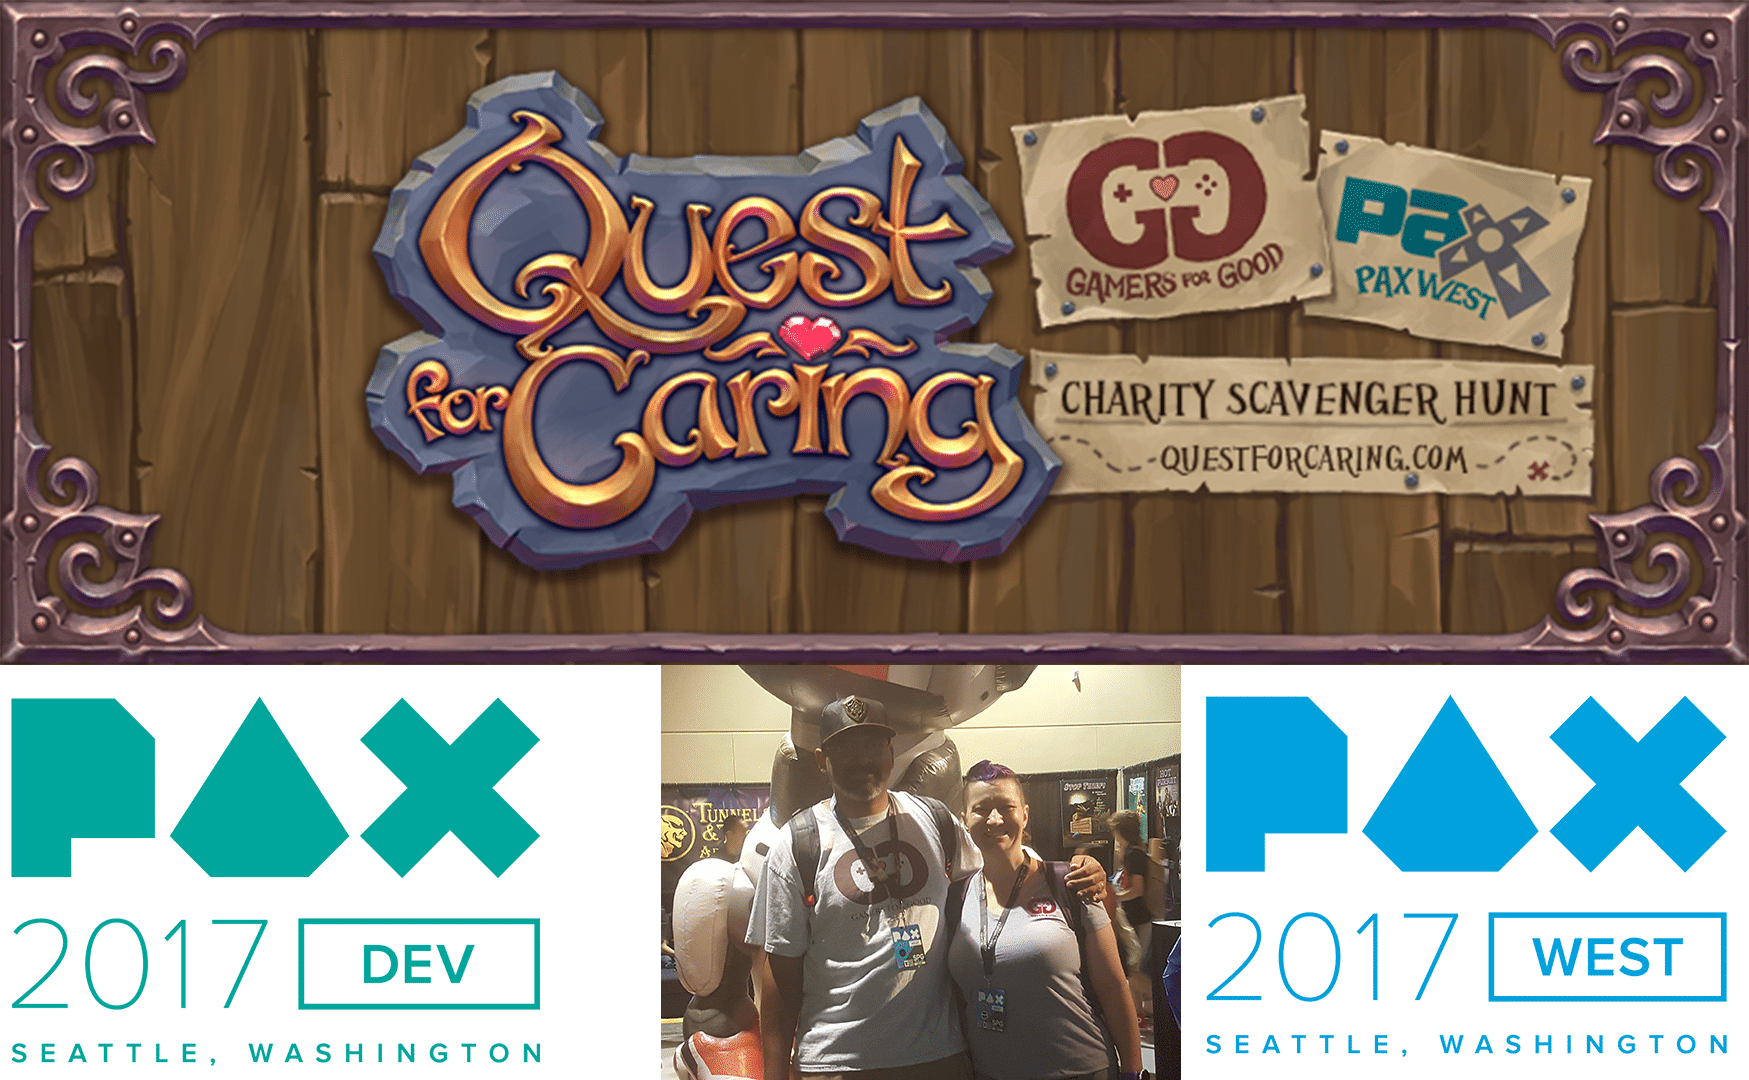 Gamers for Good donates $30K Thousand dollars and puts gamers on a quest @ PAX West 2017